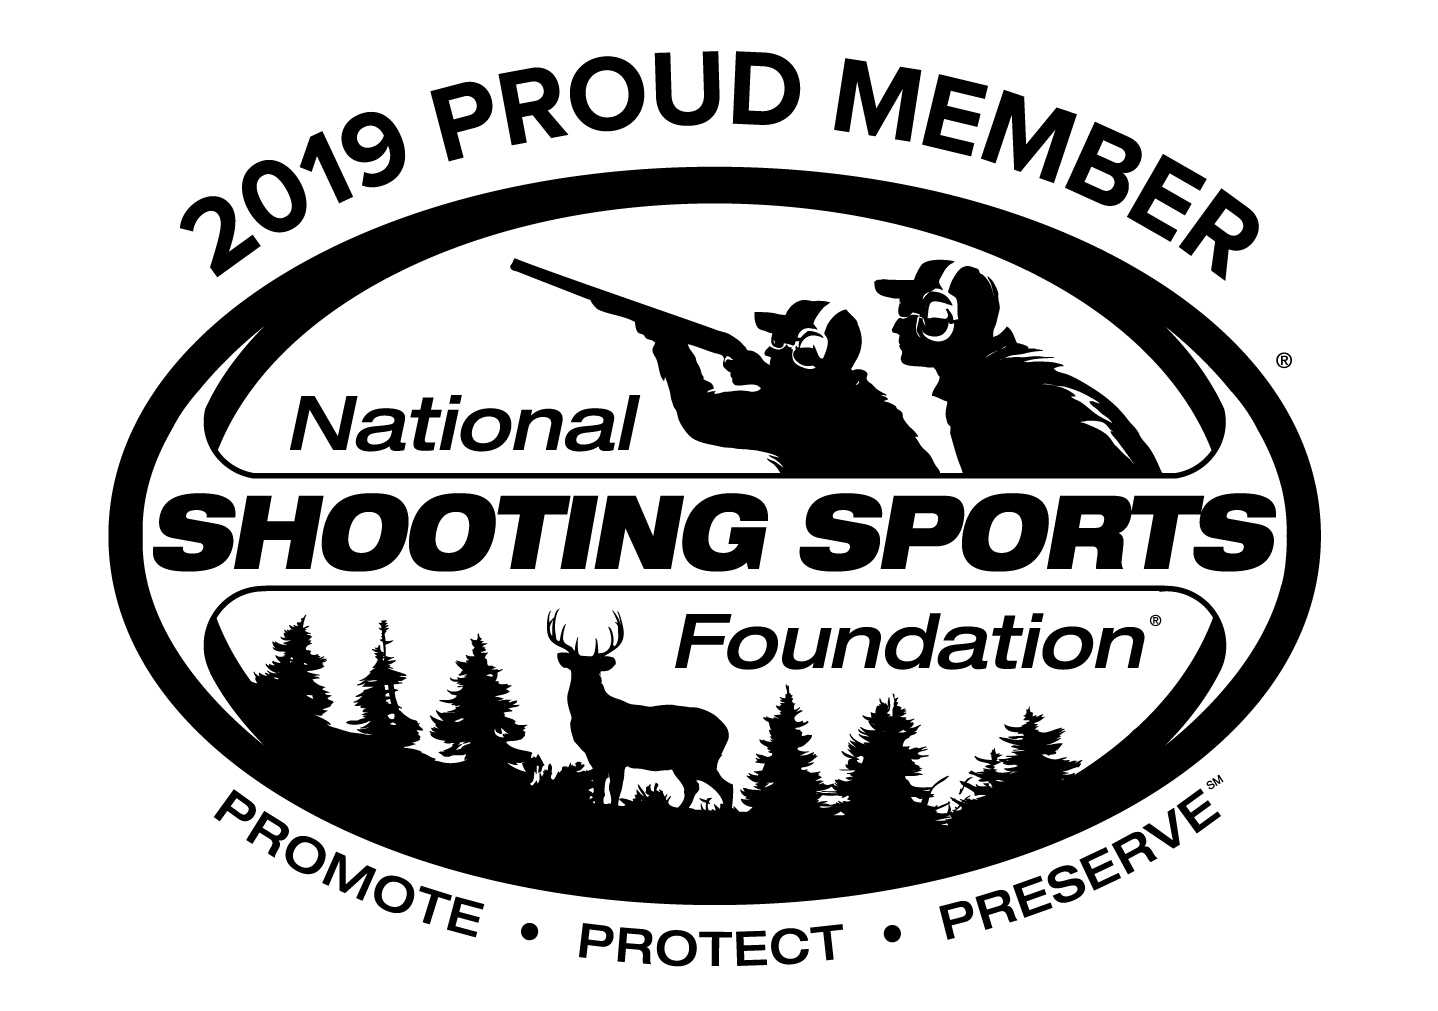 National Shooting Sports Foundation - 2019 Proud Member